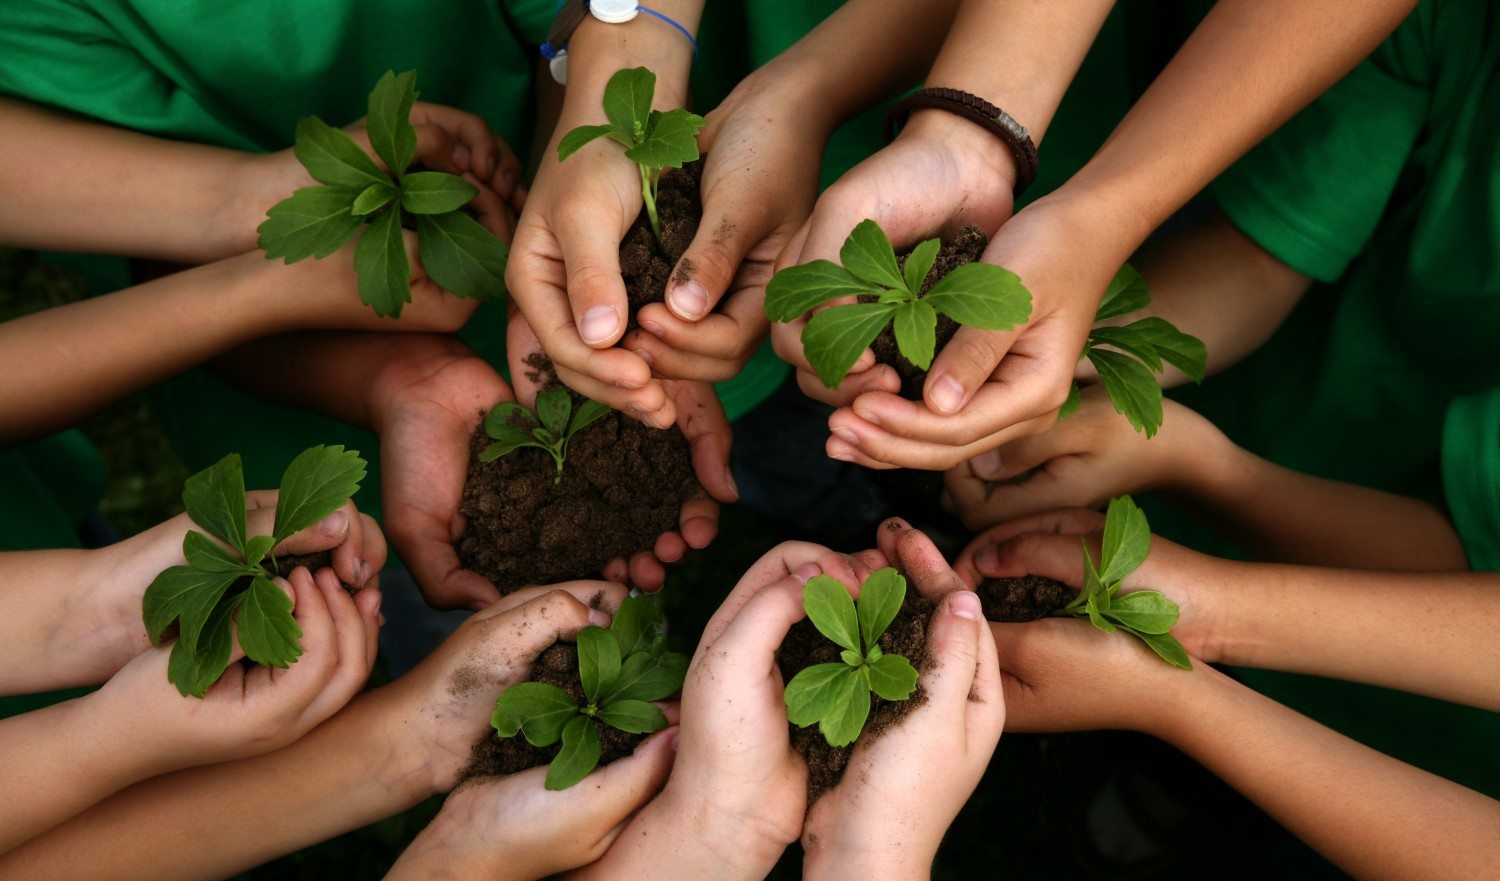 Kids holding plants as an expression of the green environmental movement and earth.